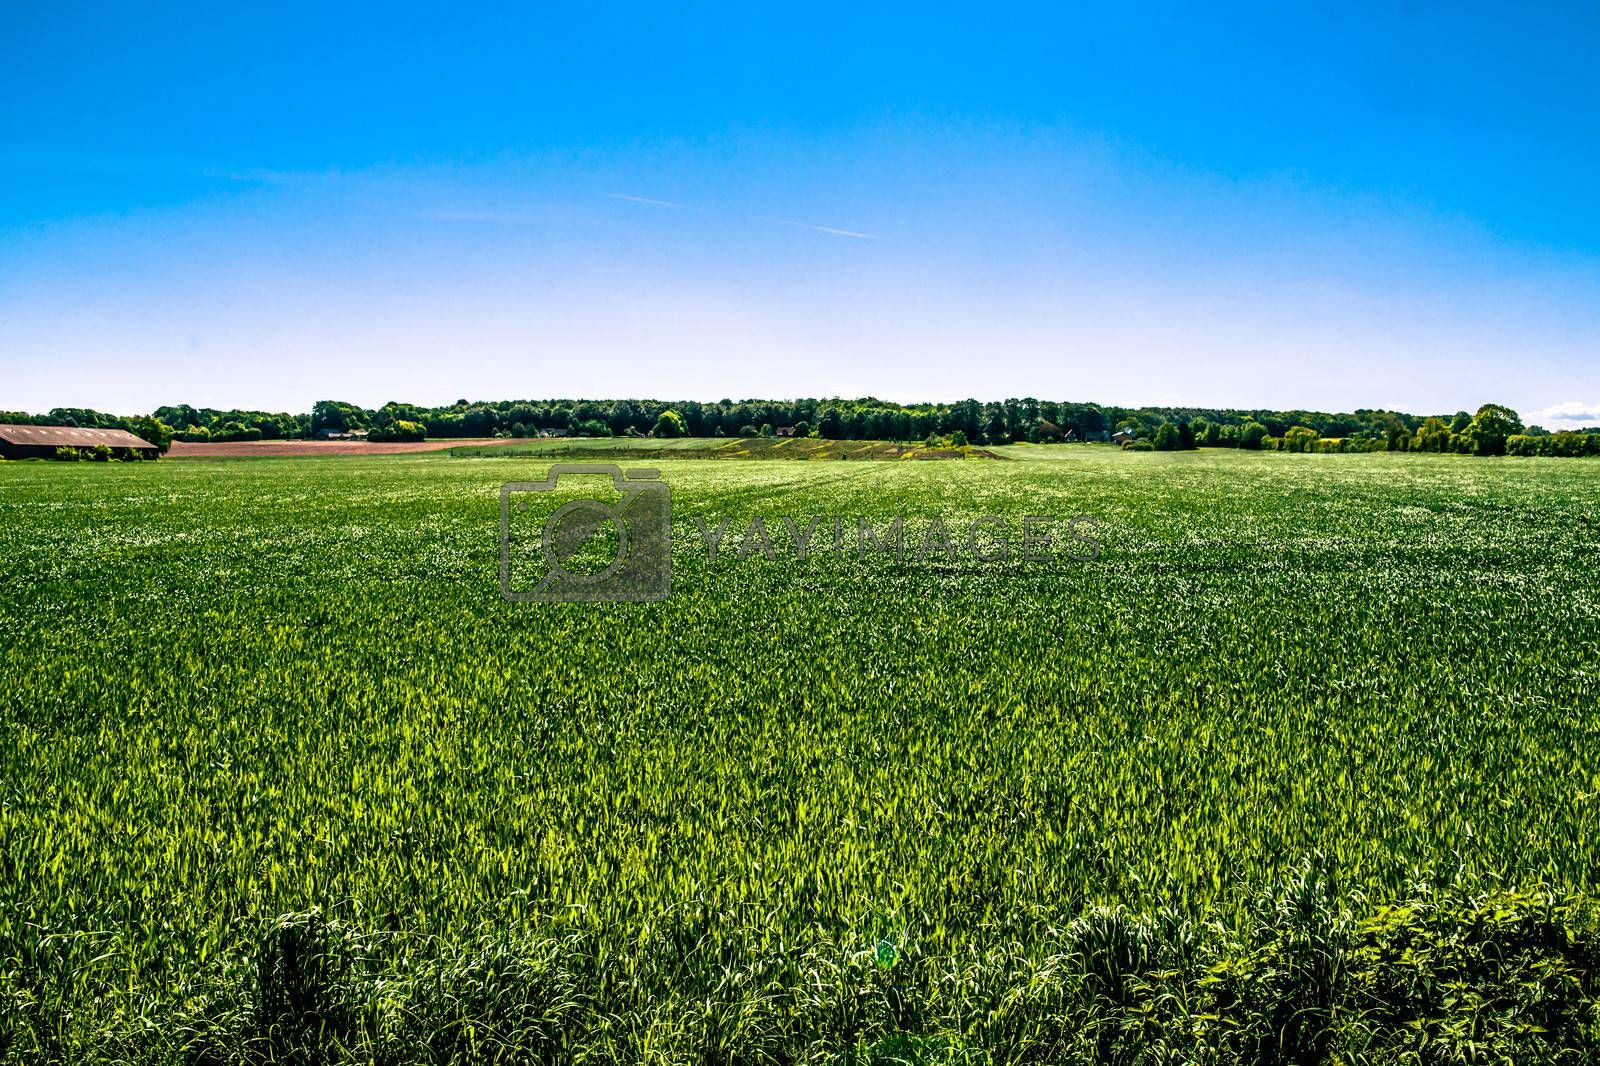 Countryside field by Sportactive